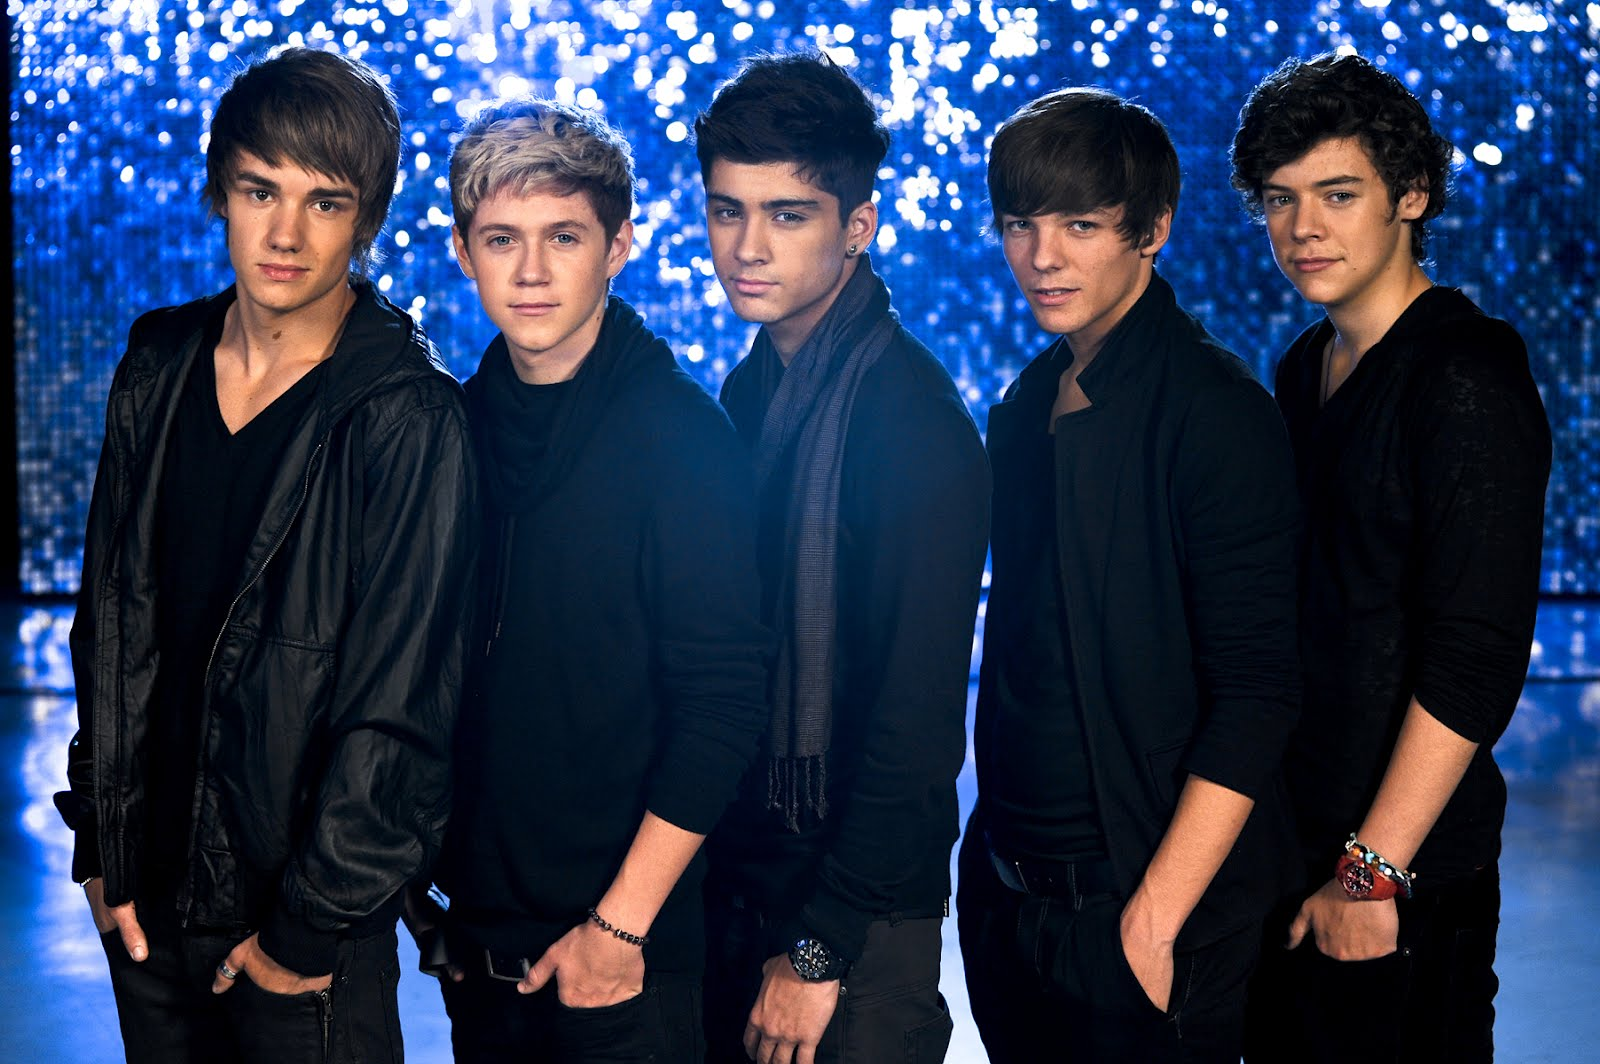 One Direction Photo: Hairstyles Beauties: One Direction Hairstyles